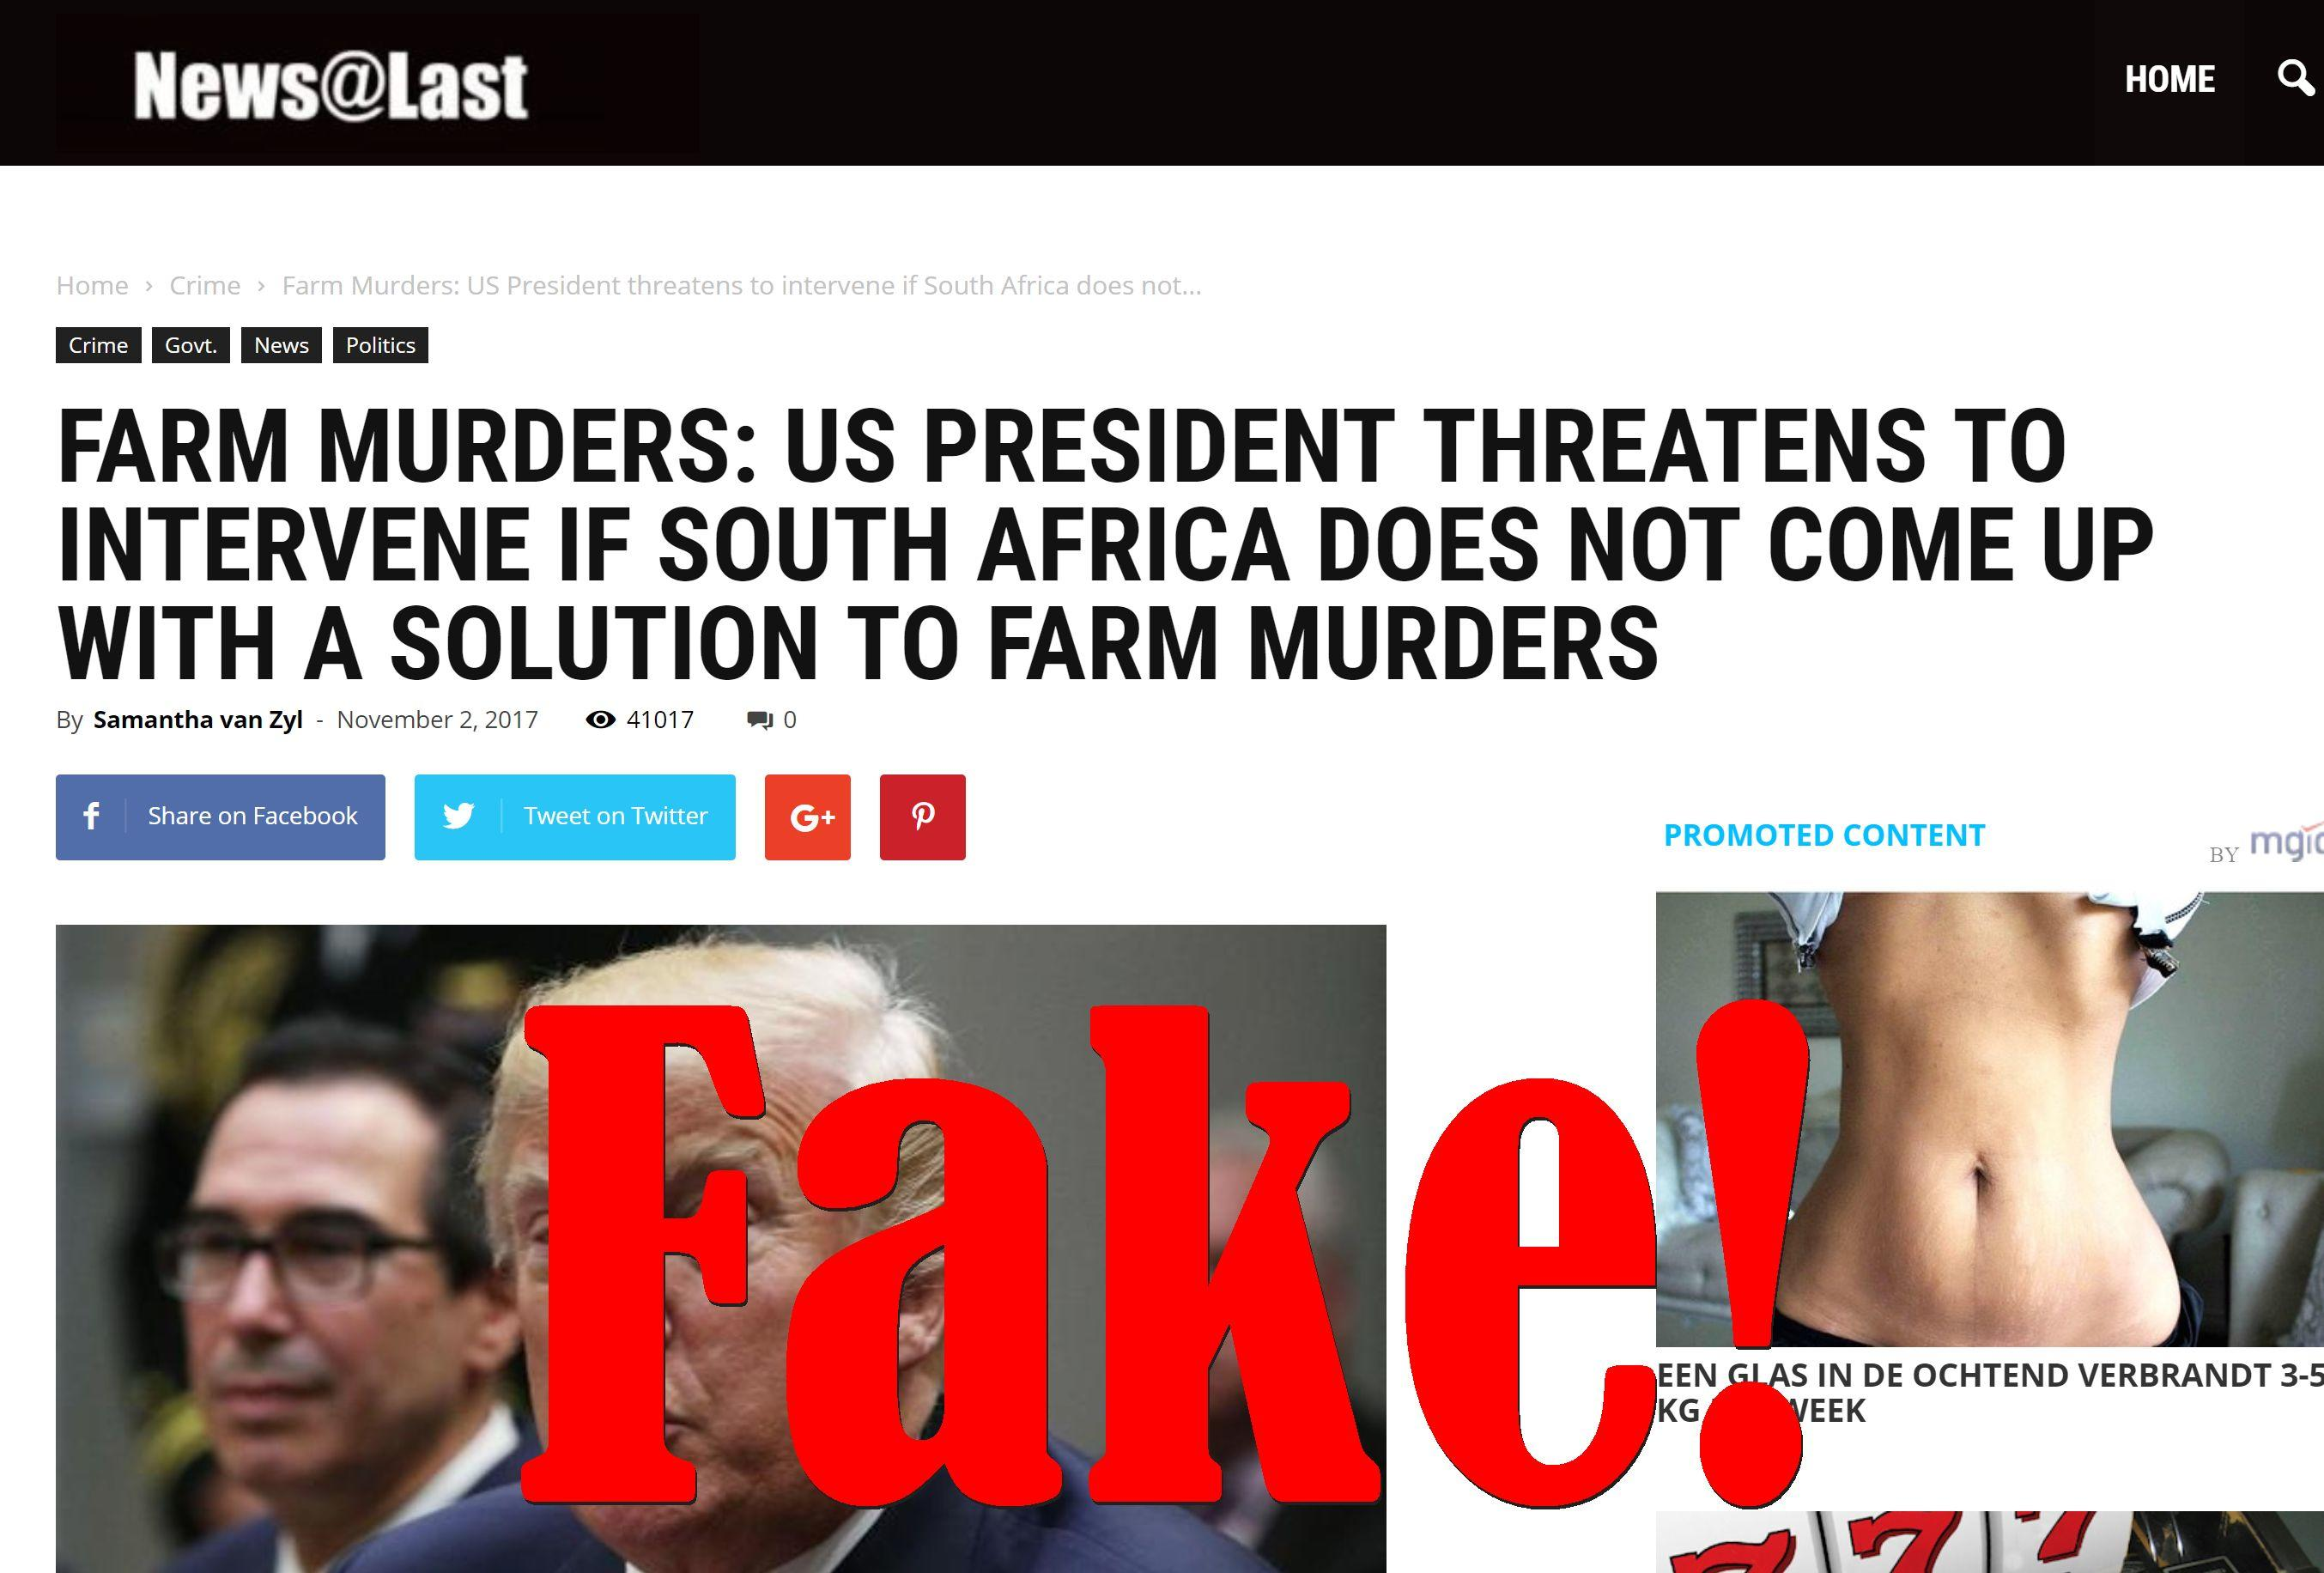 Fake News: Trump Did NOT Threaten To Intervene In South Africa Farm Murders